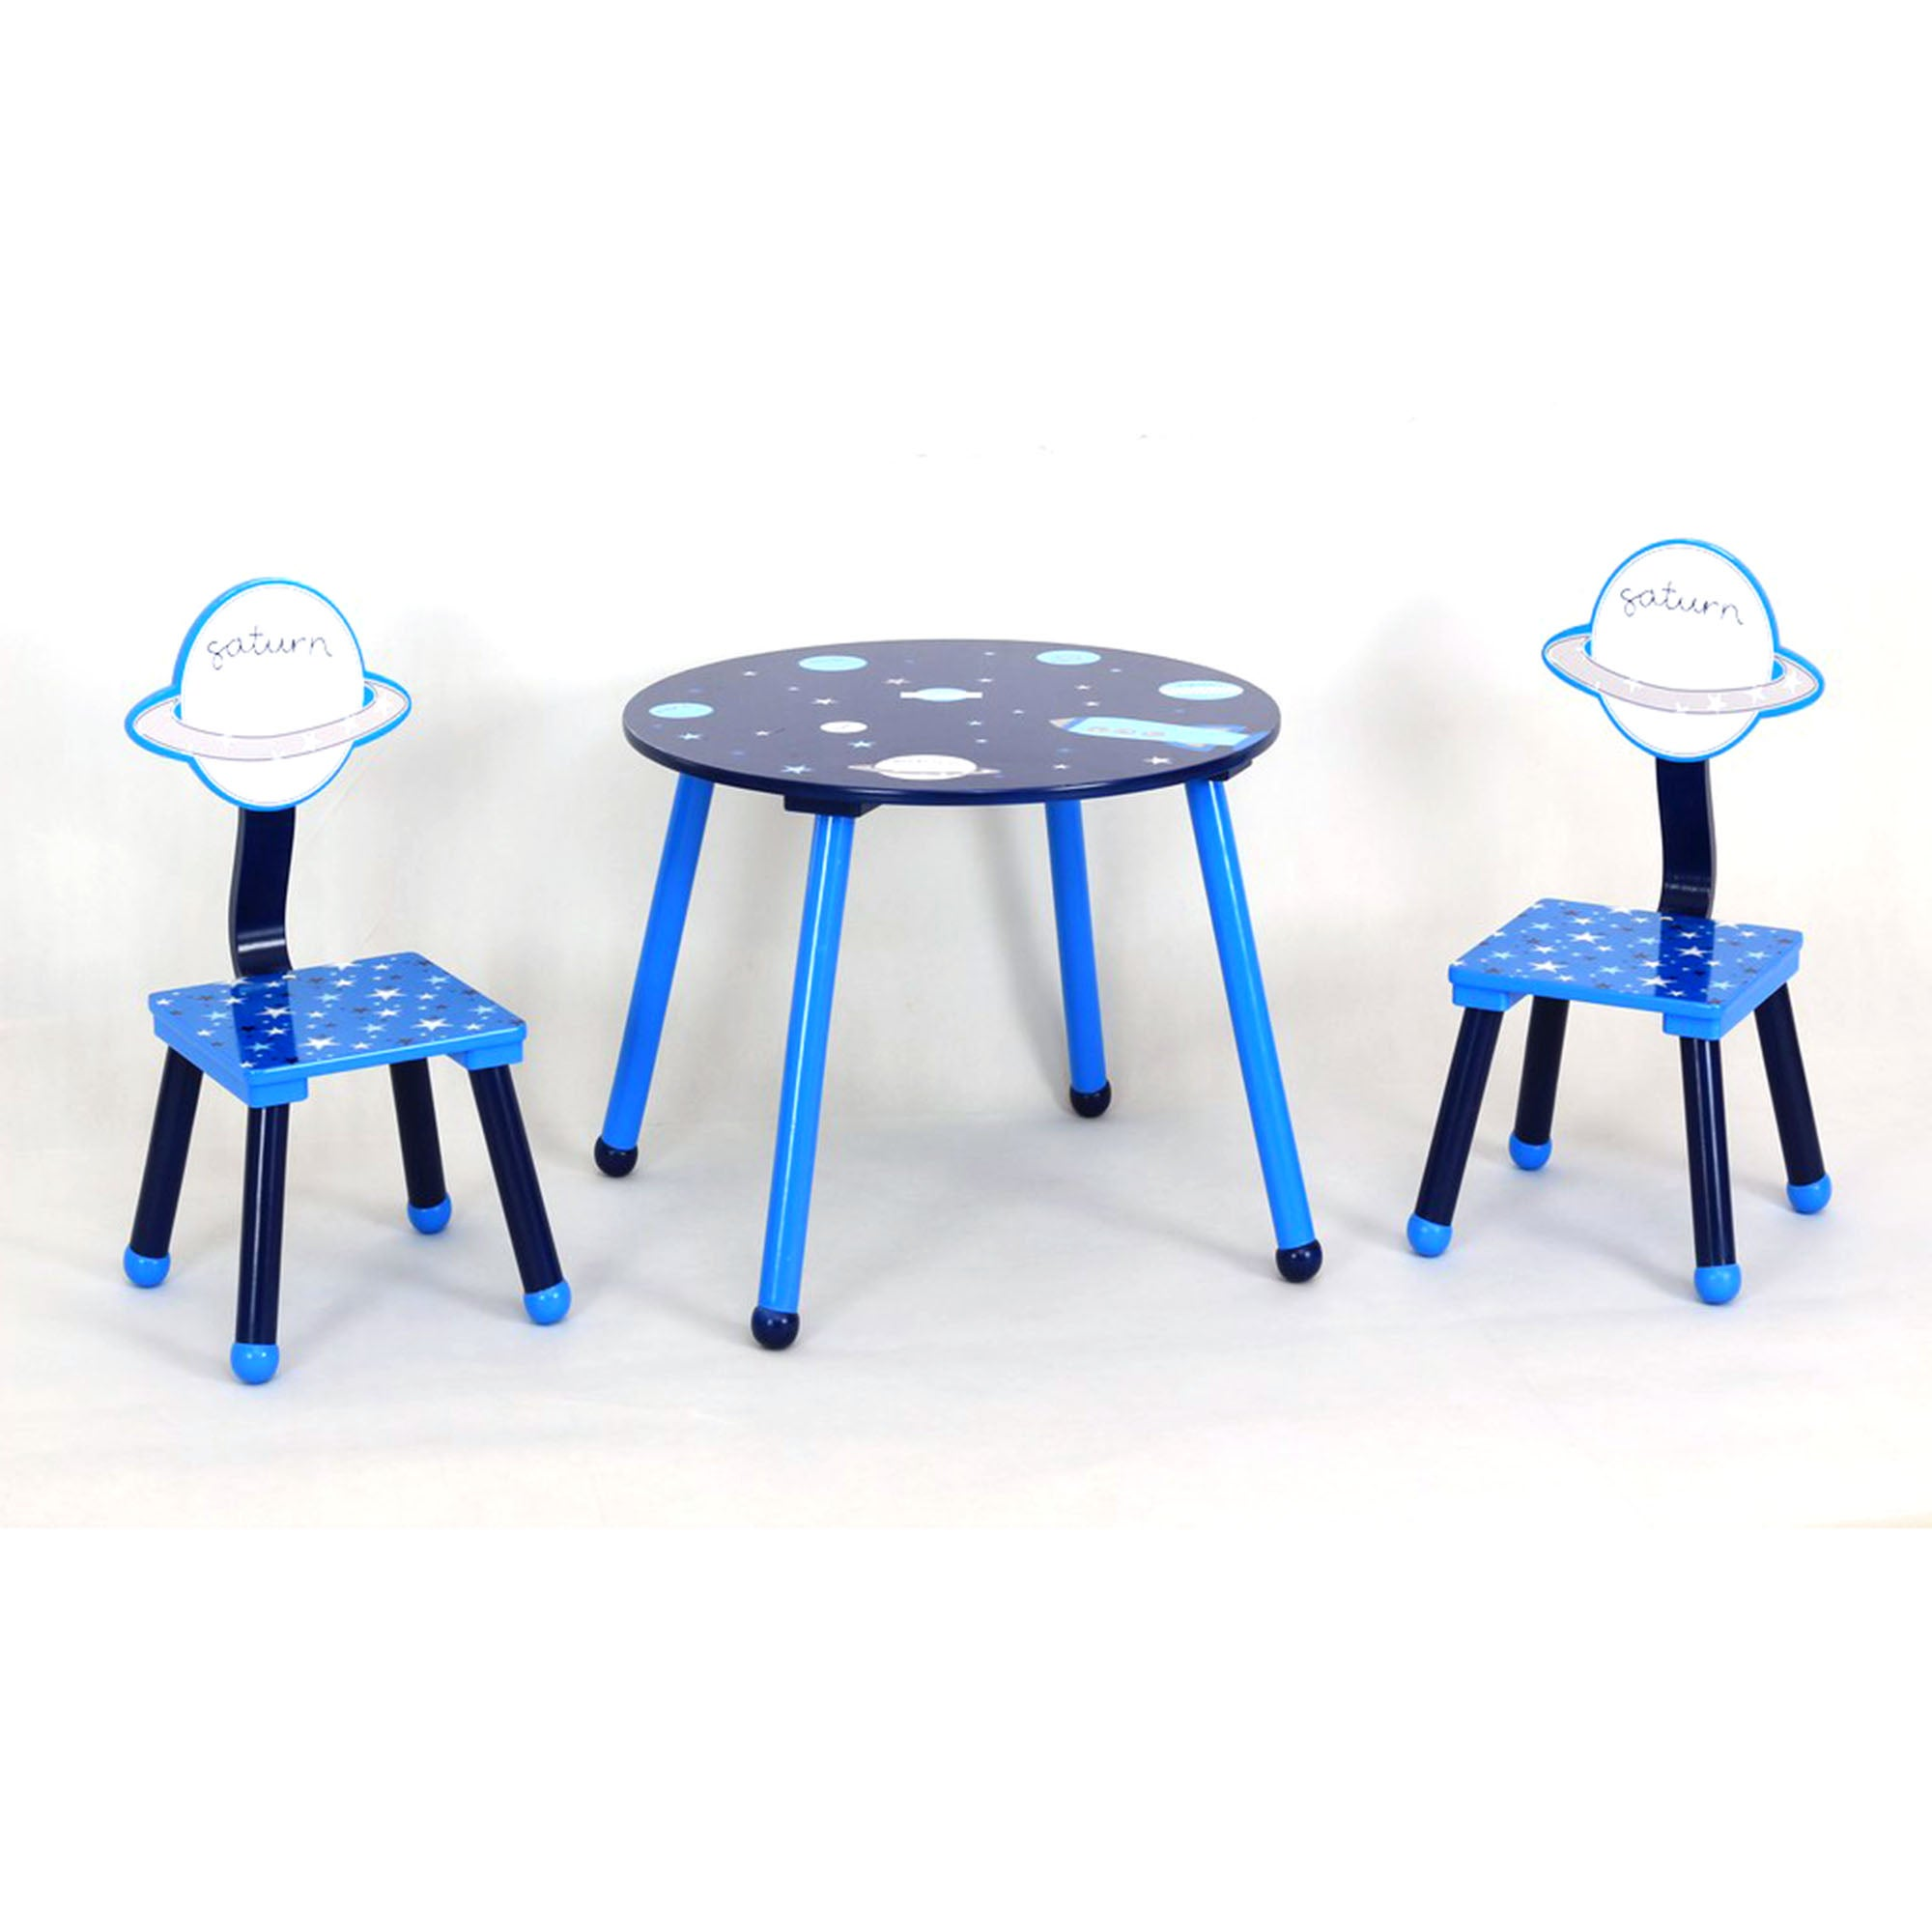 Kids Space Misson Collection Playtable and Chairs